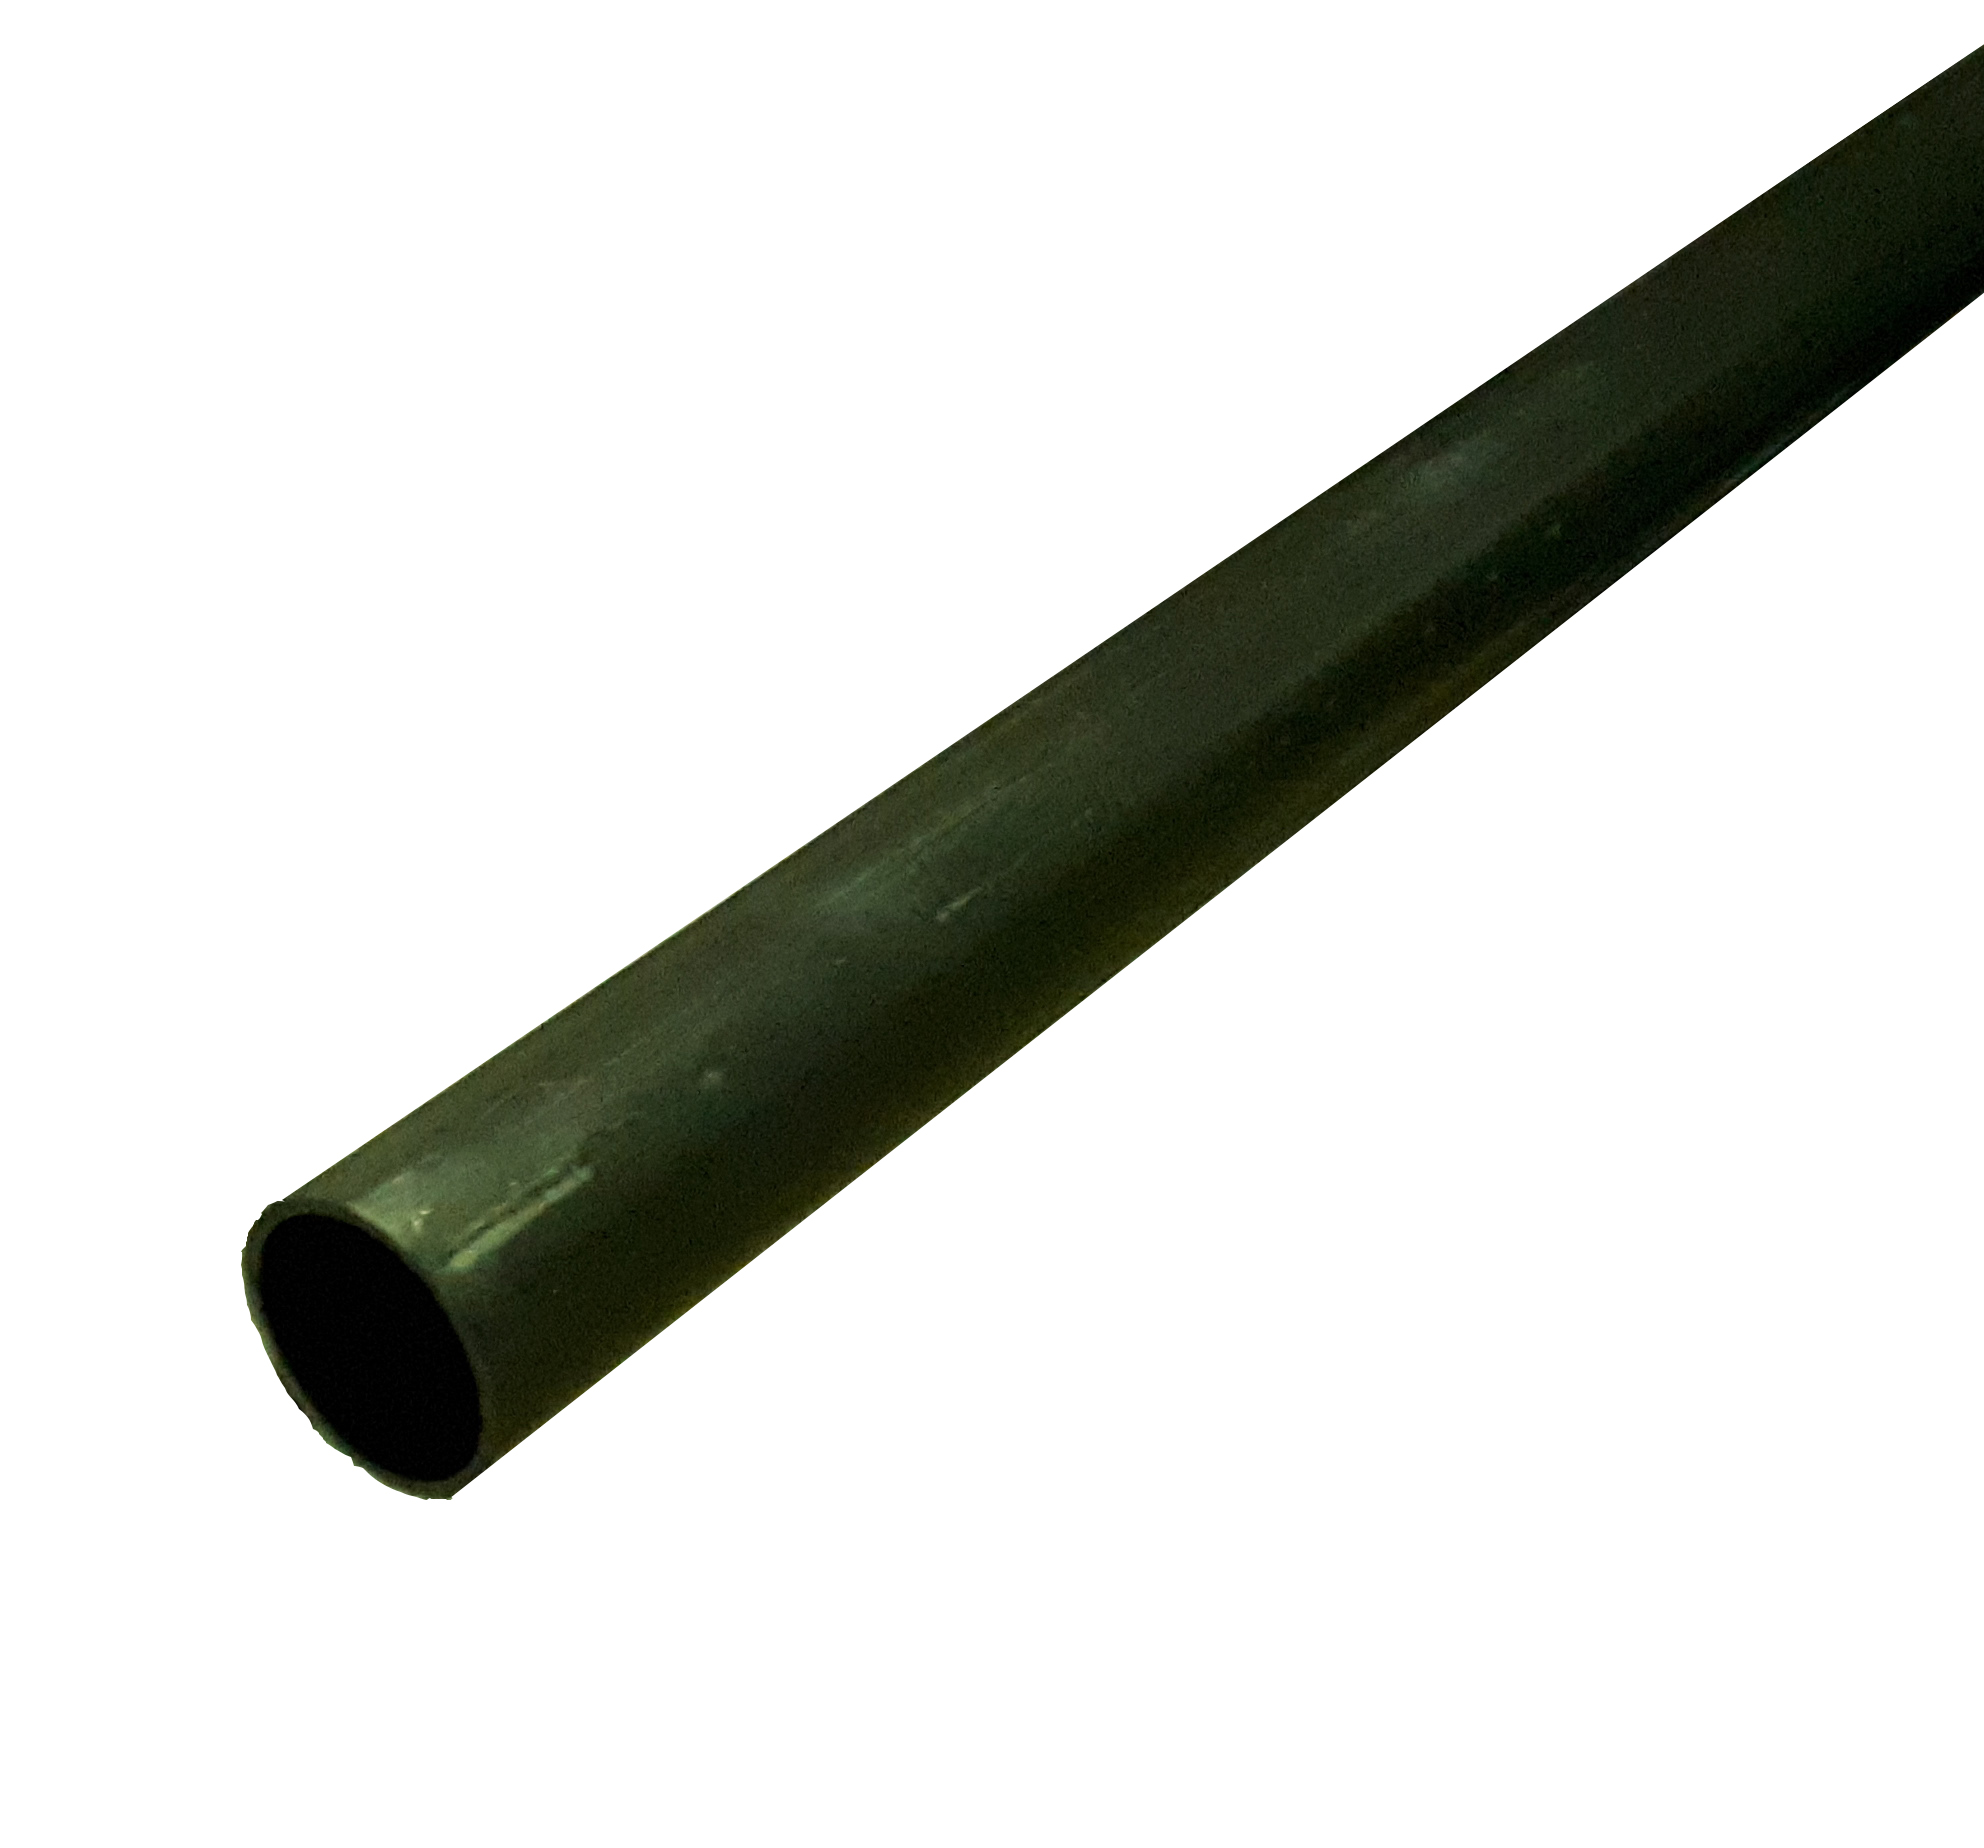 FLOPLAST WS03BL 50MM ABS SOLVENT WELD WASTE PIPE - BLACK